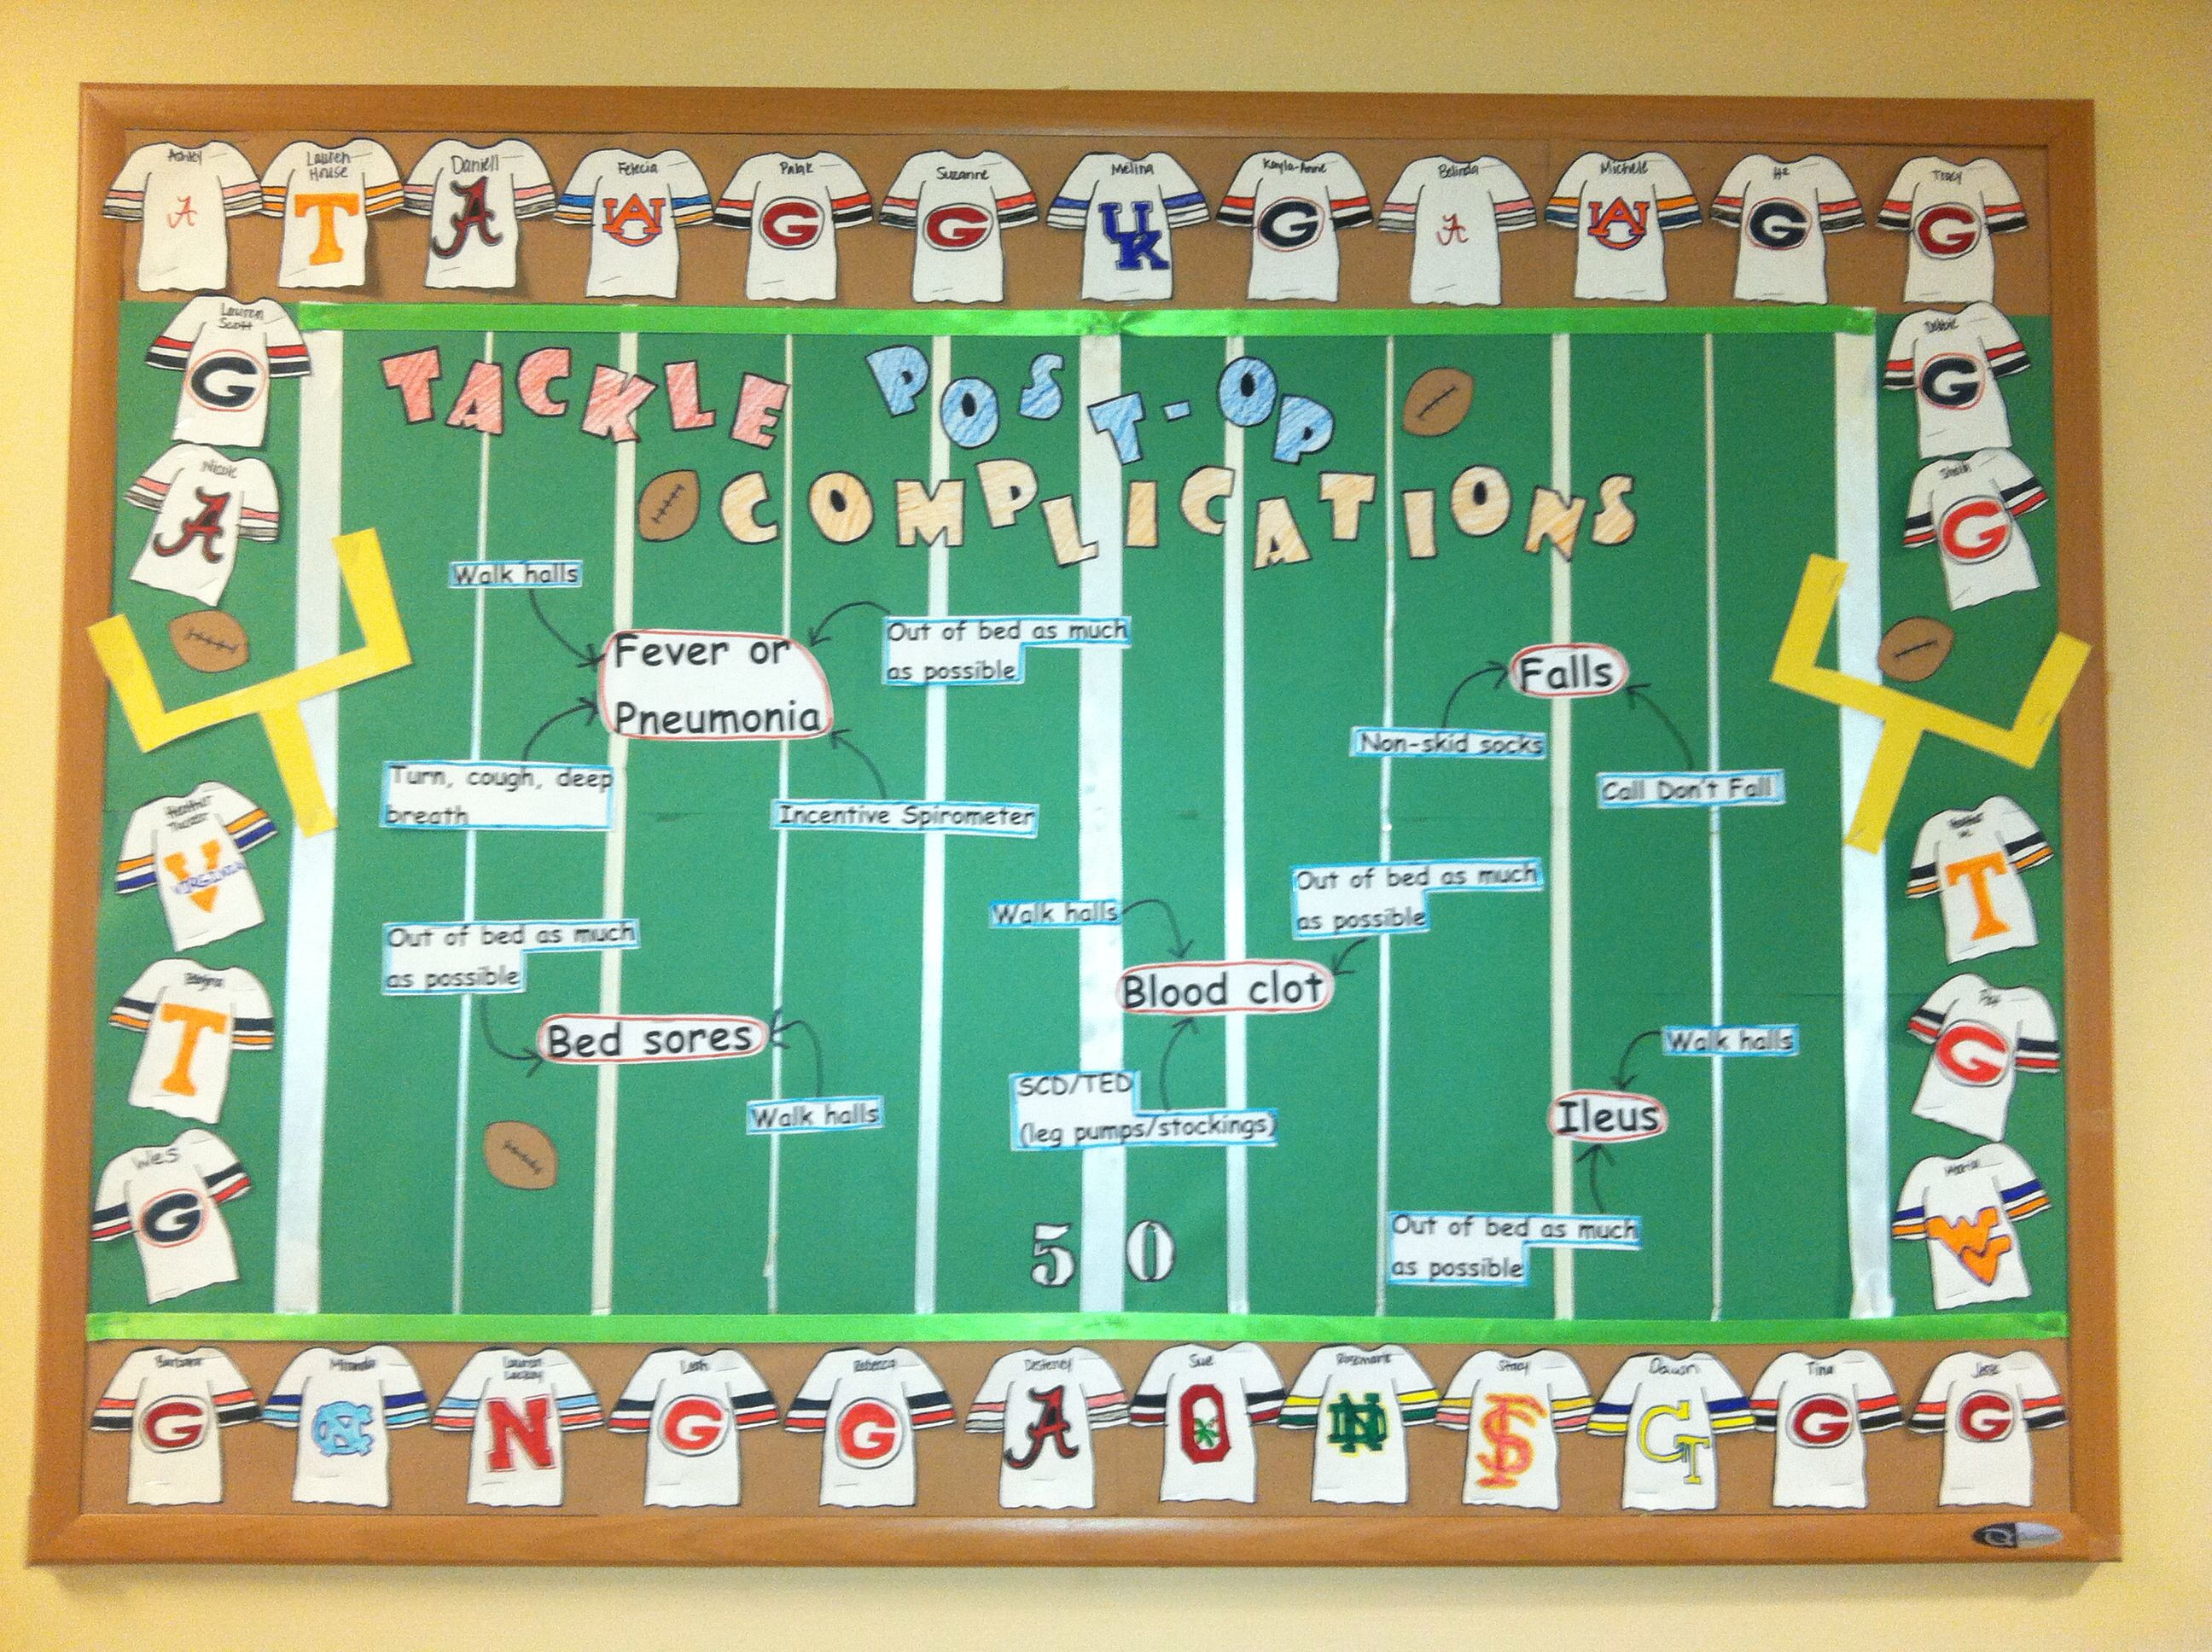 """Tackle postop complications"" bulletin board for nursing"